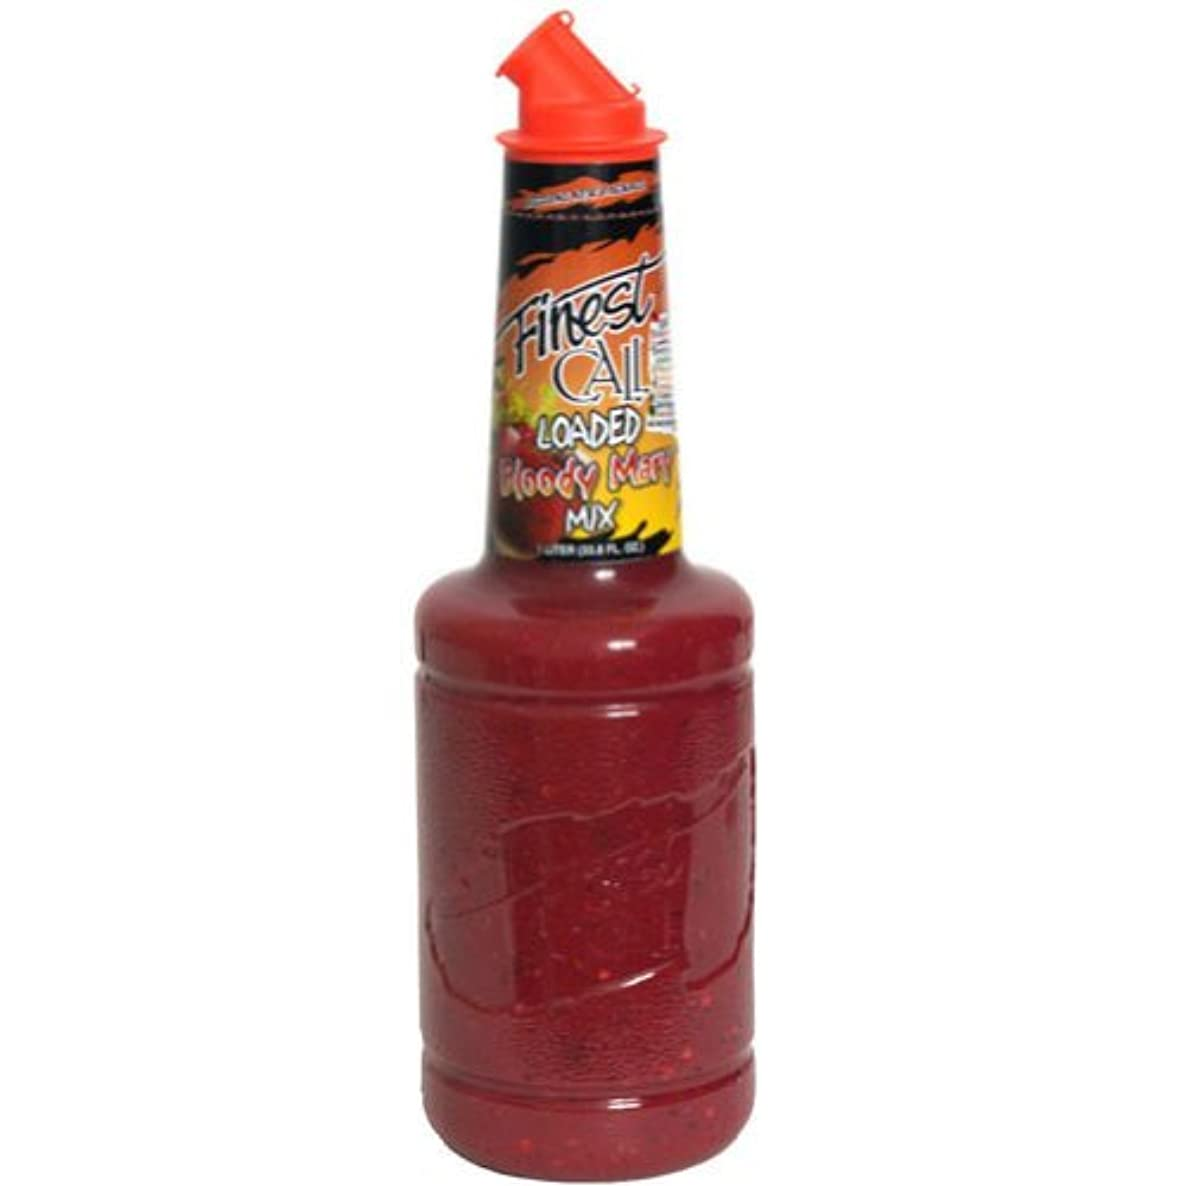 Finest Call Loaded Bloody Mary Mix, 33.8-Ounce (Pack of 6)